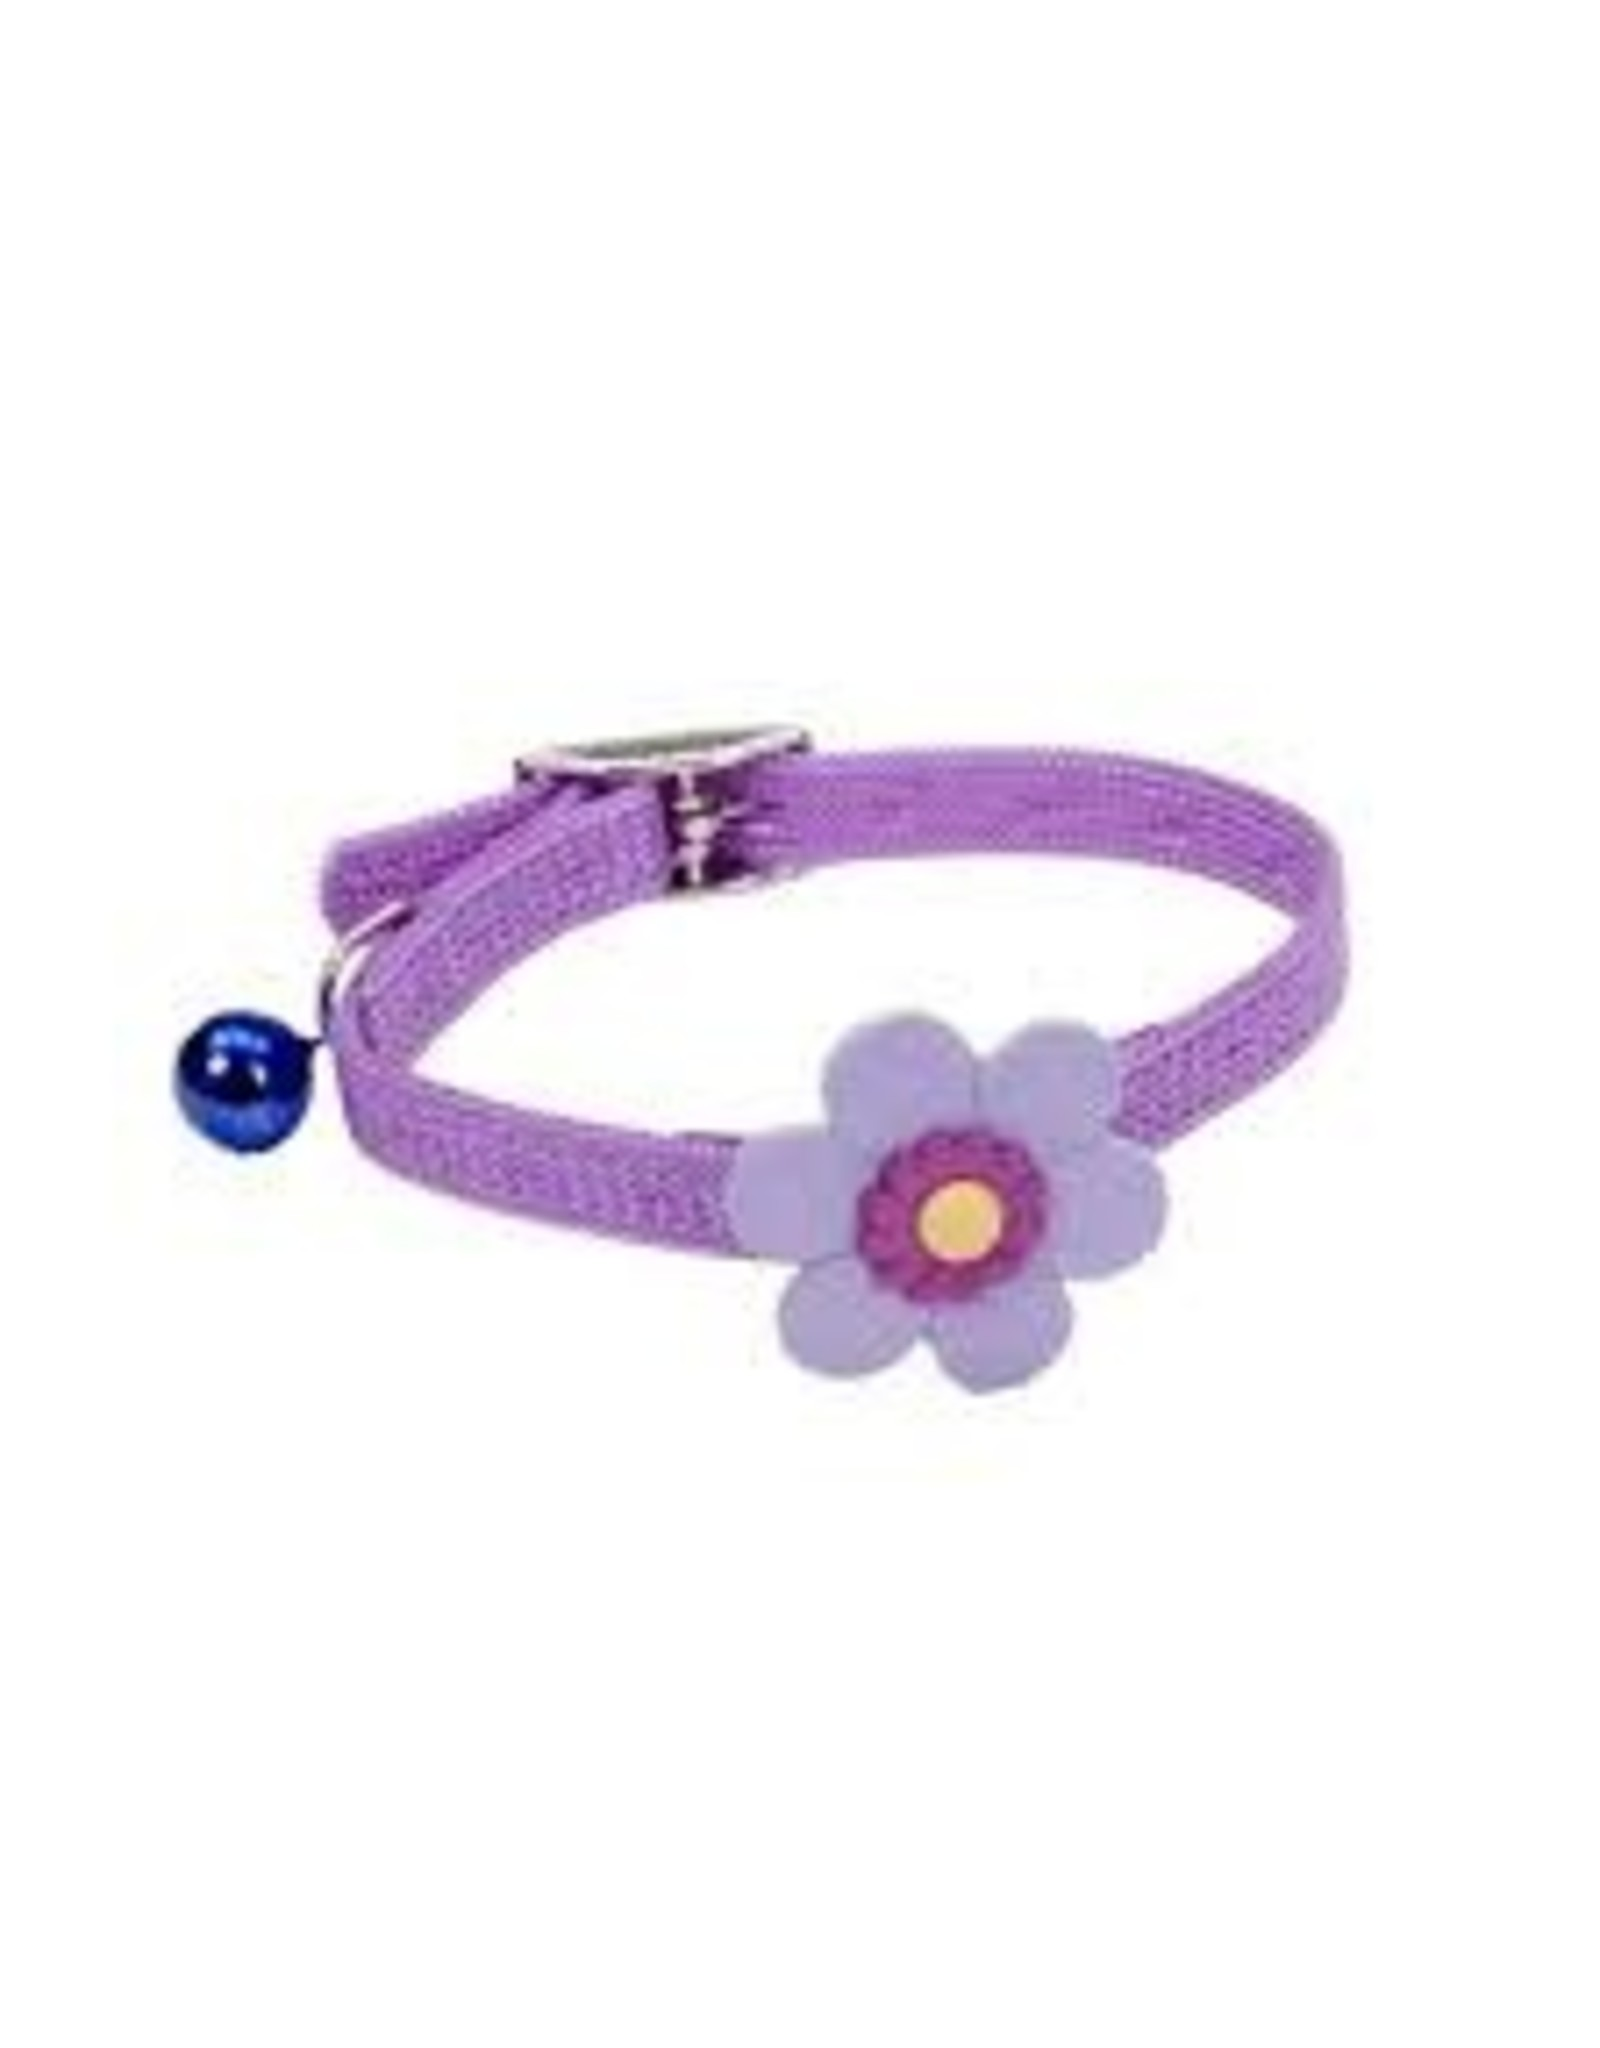 "Coastal Coastal Cat Decorative Safety Collar - 10"" Daisy Lilac"